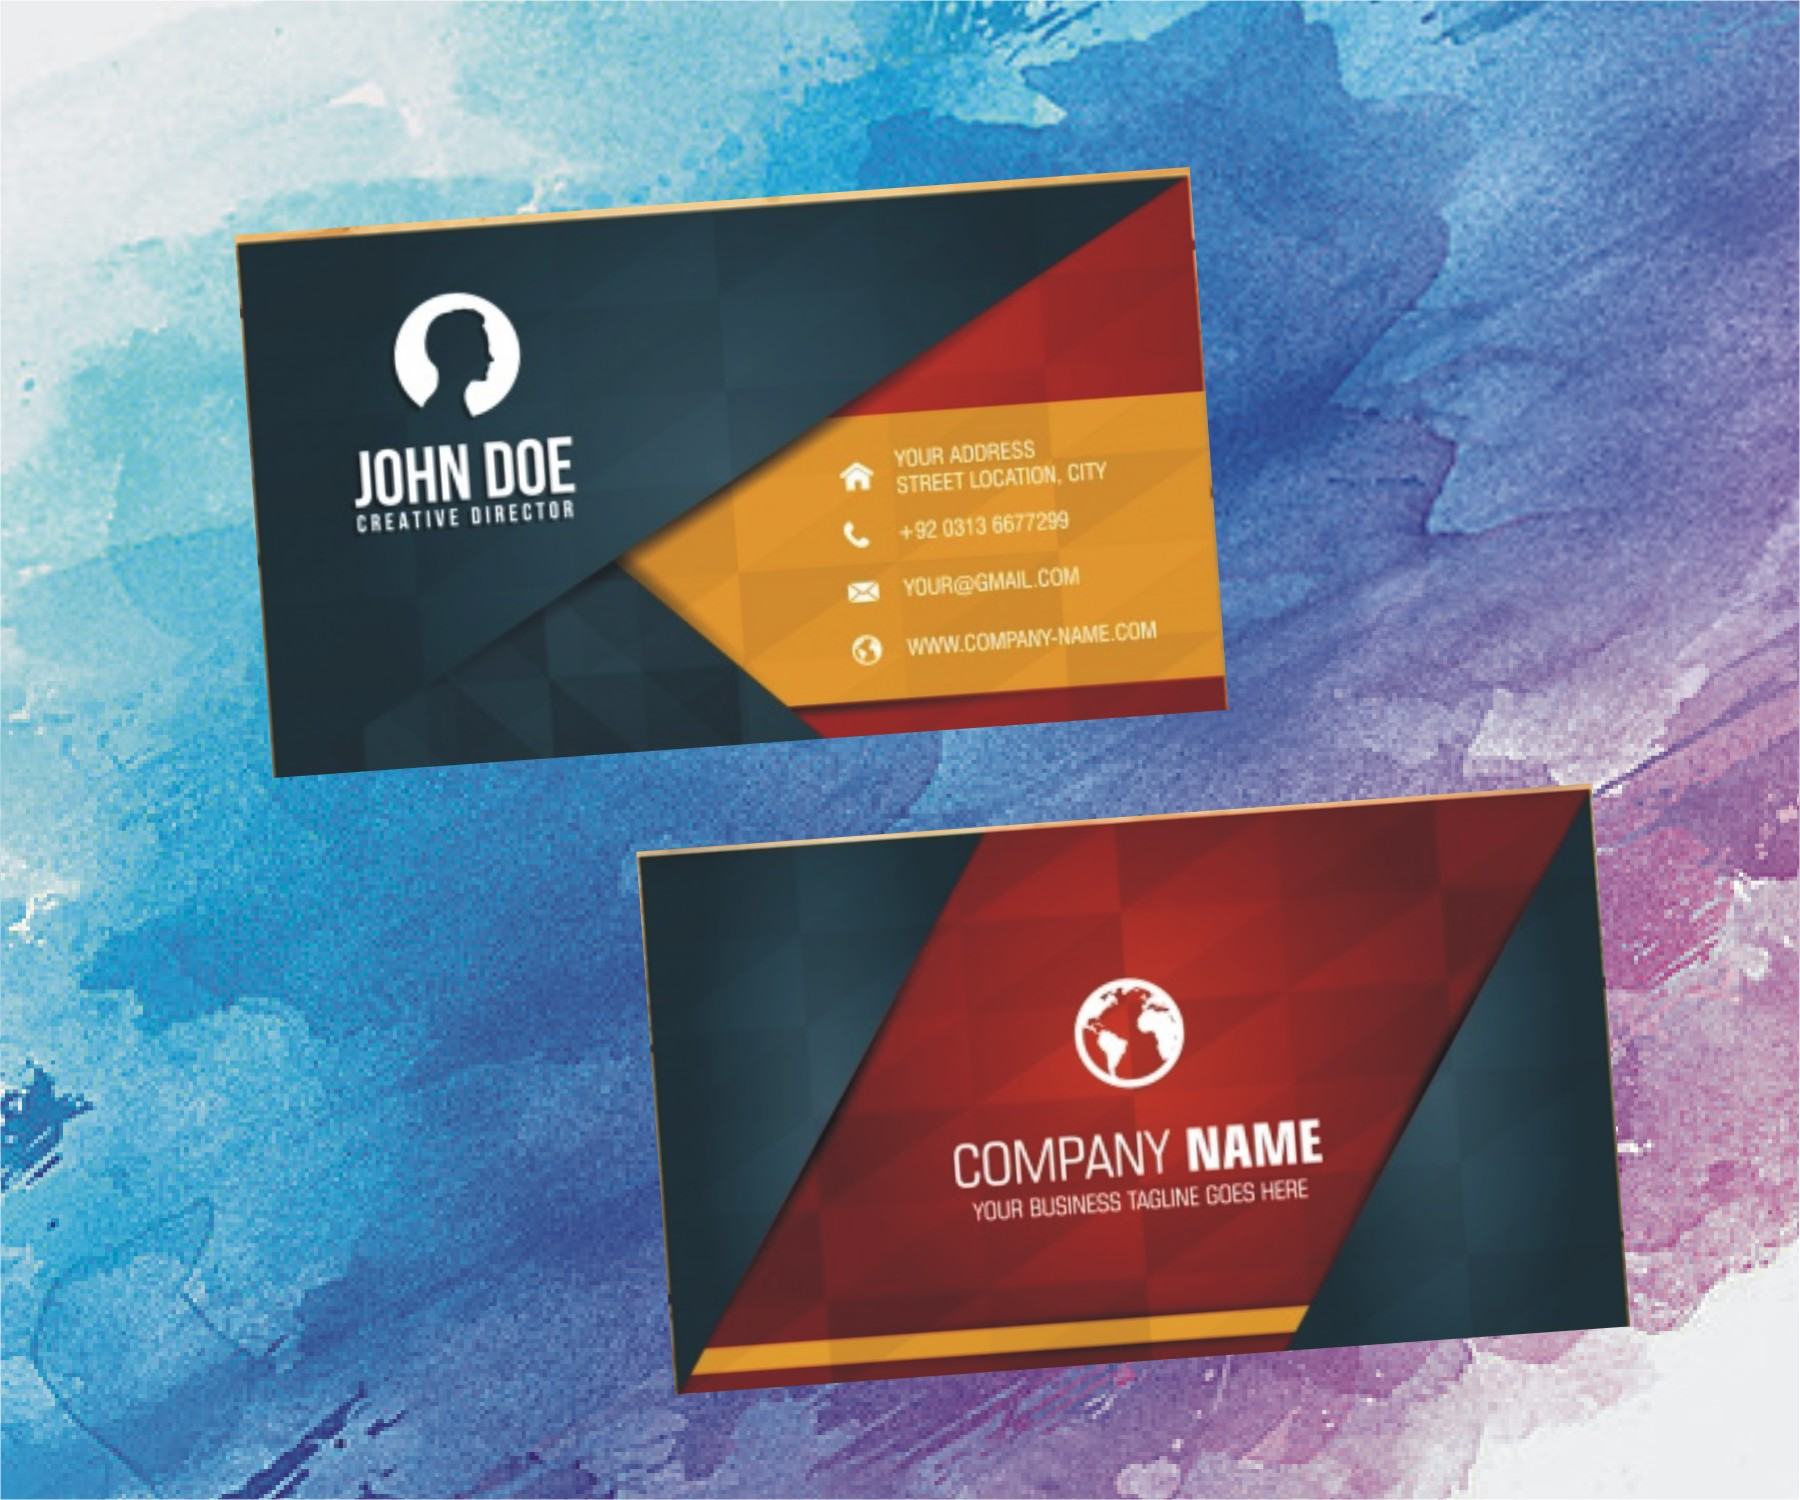 Design Stunning Corporate Business Card Design